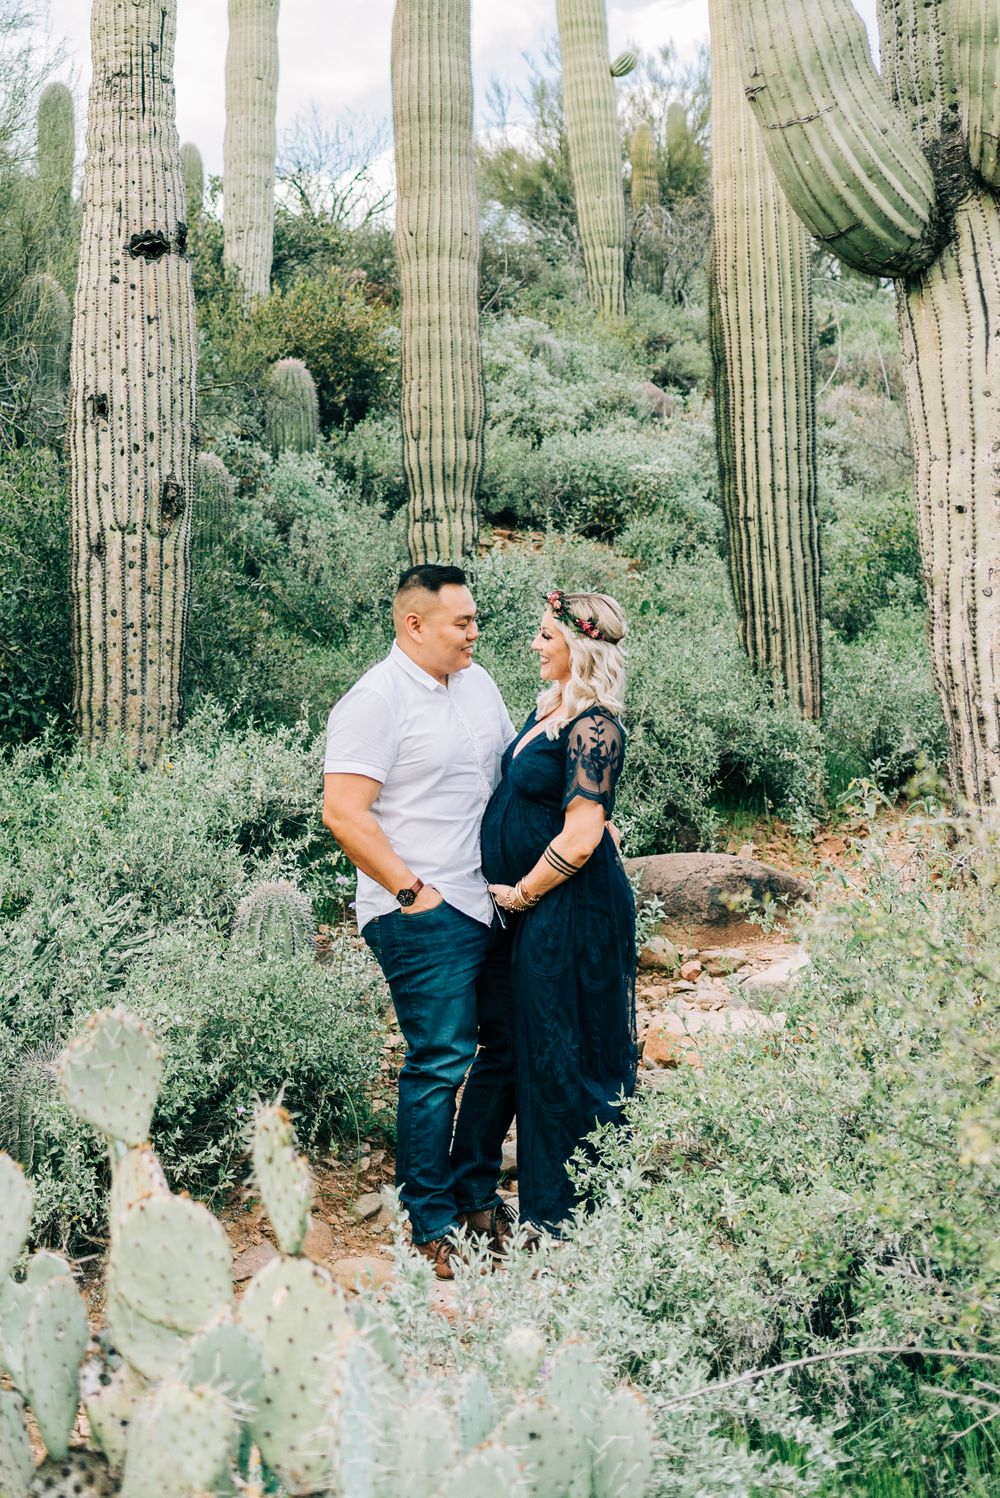 Maternity Session at Spurs Cross Trailhead in Cave Creek, AZ